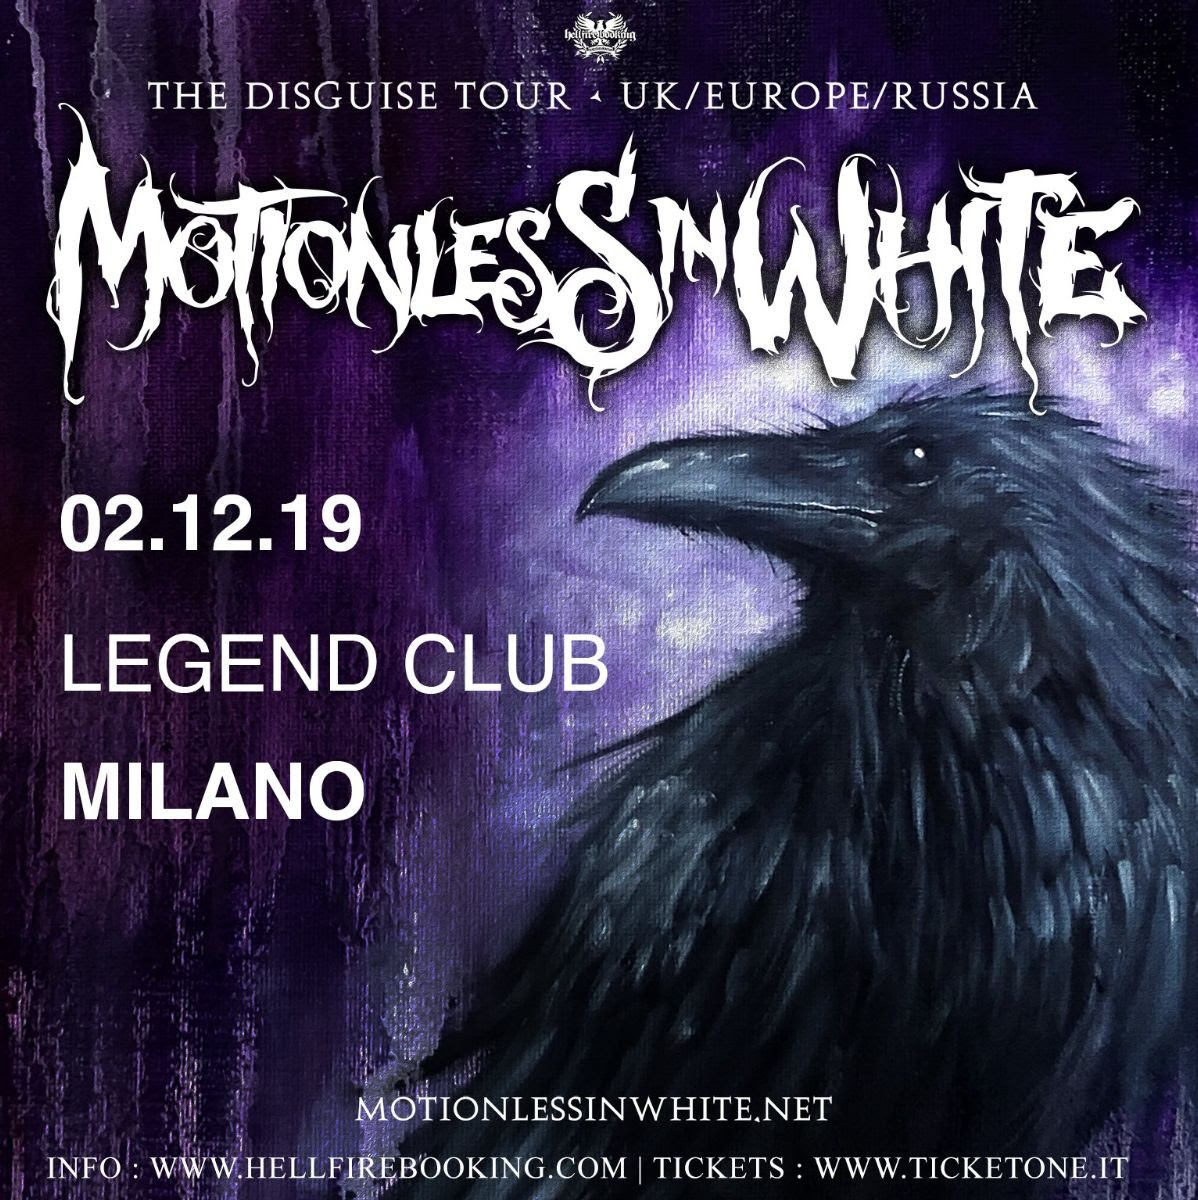 Motionless In White - Legend Club - The Disguise Tour 2019 - Promo